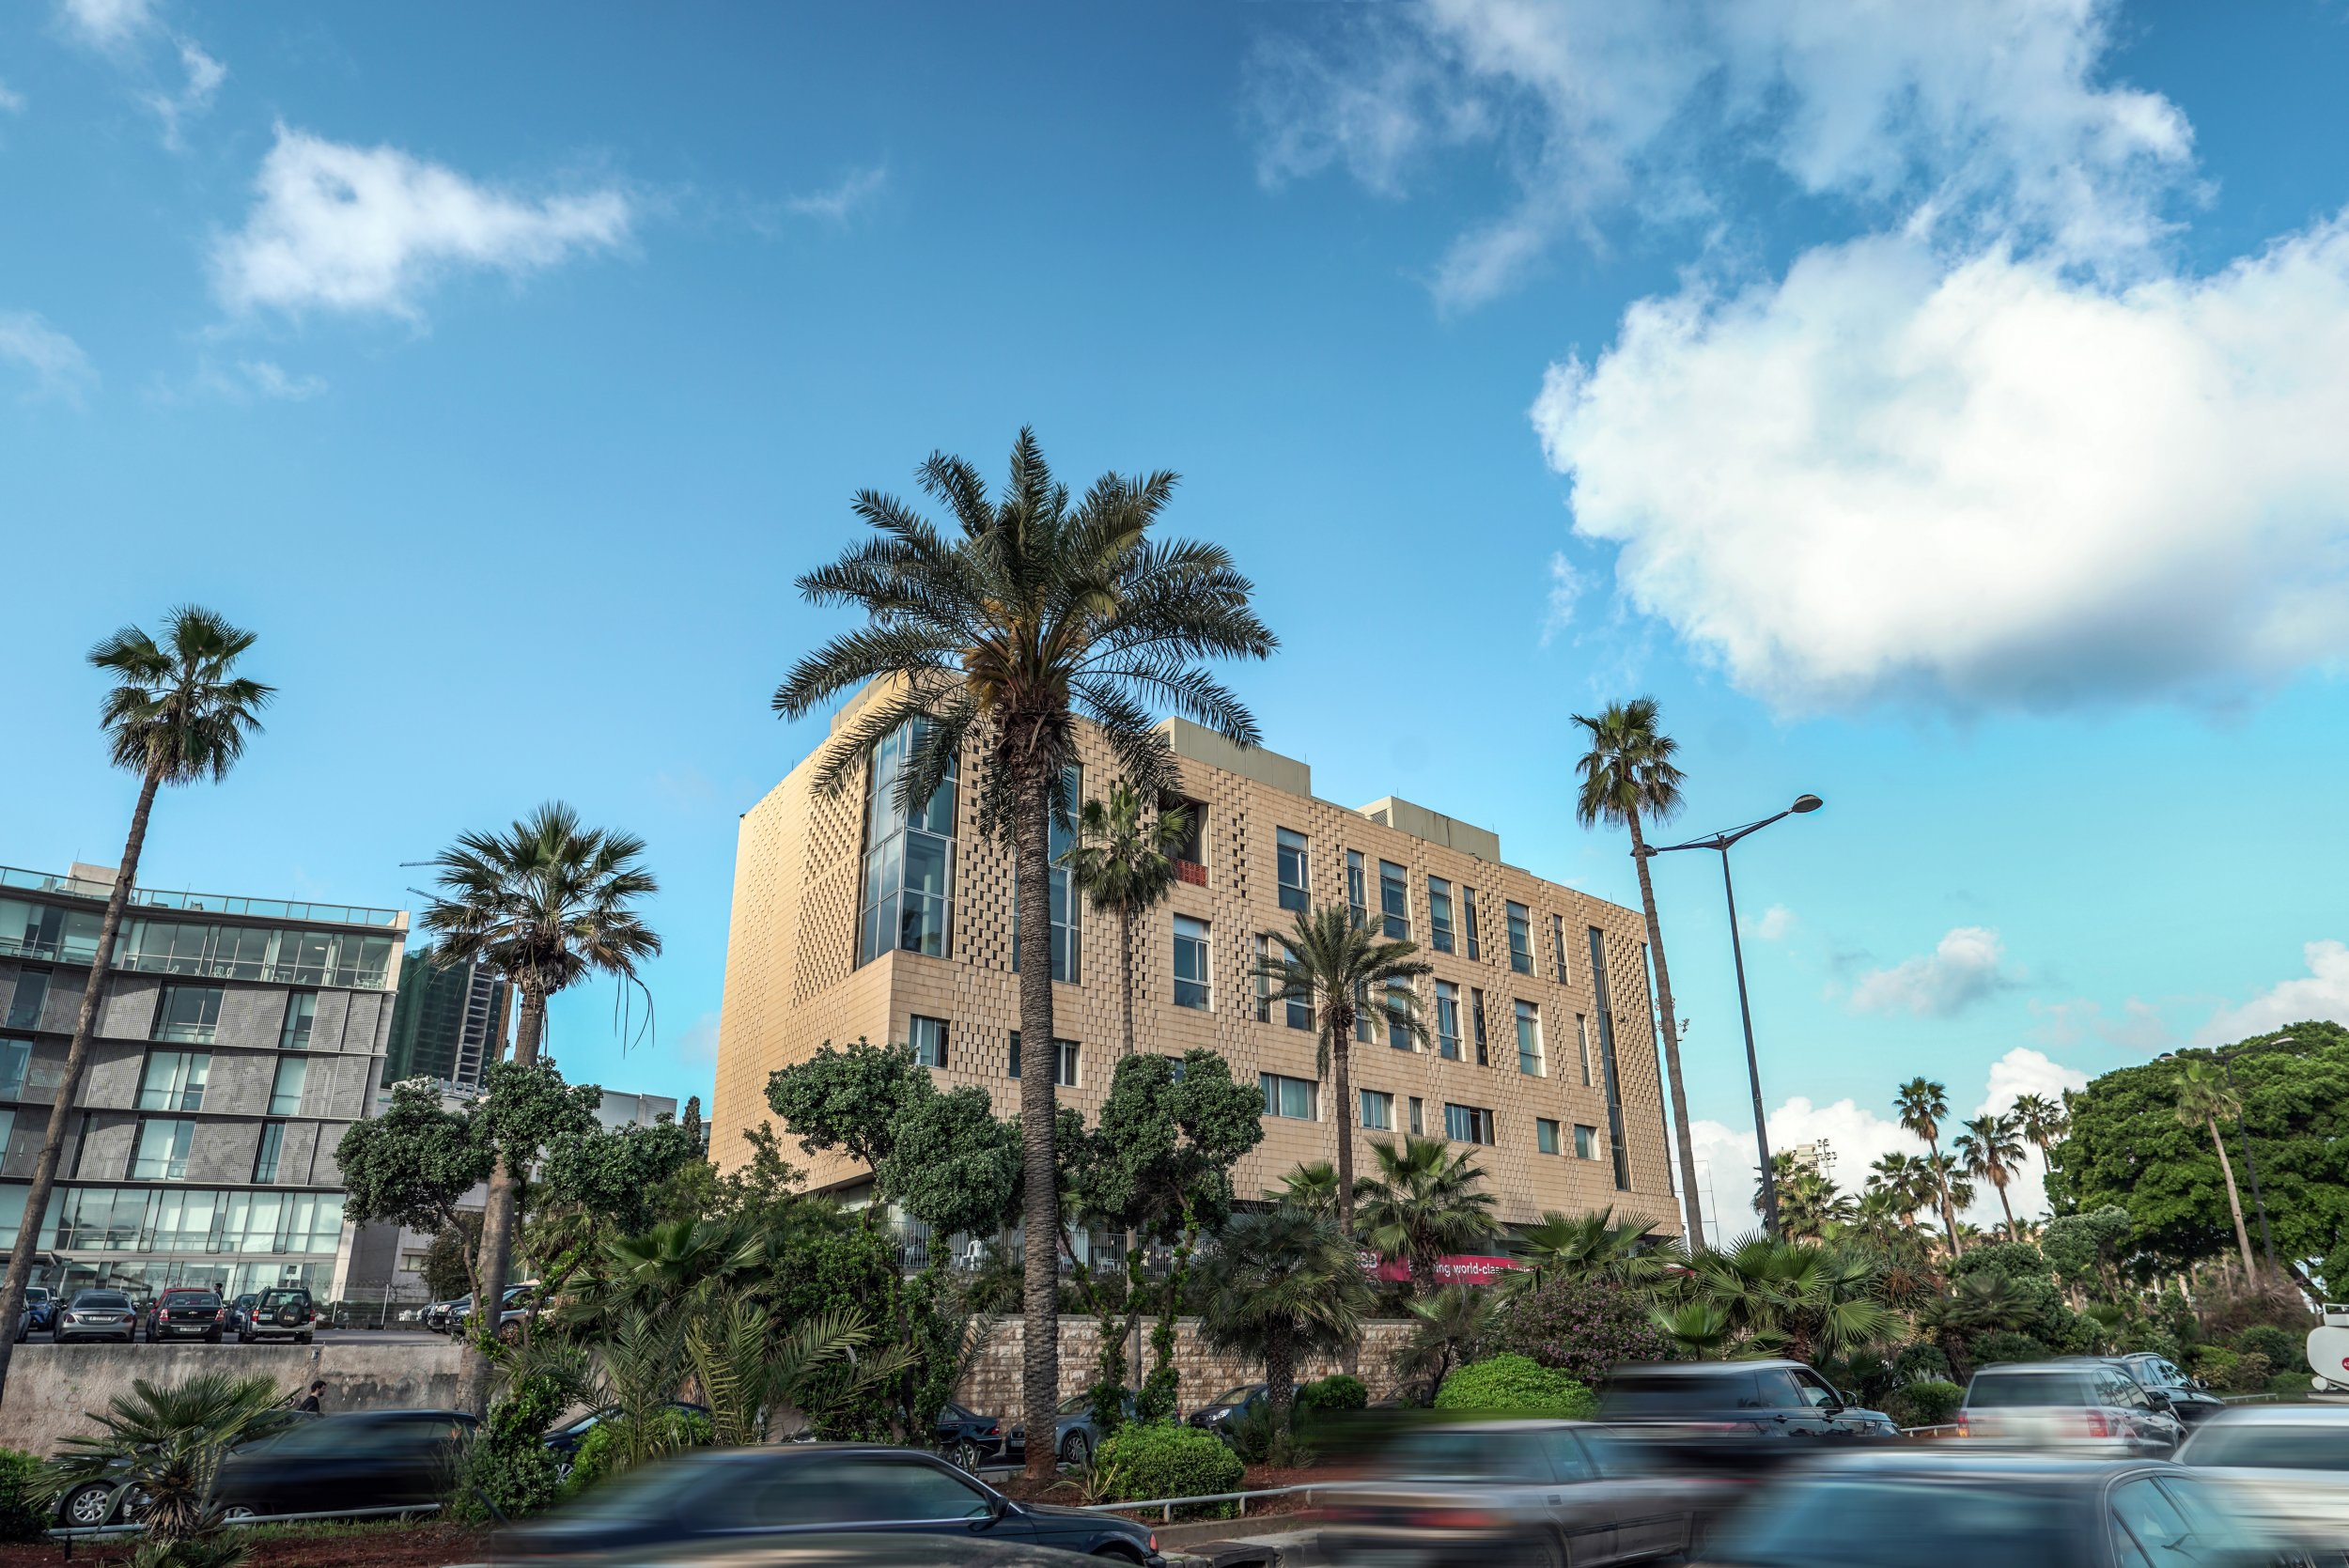 Suliman S. Olayan School of Business, American University of Beirut